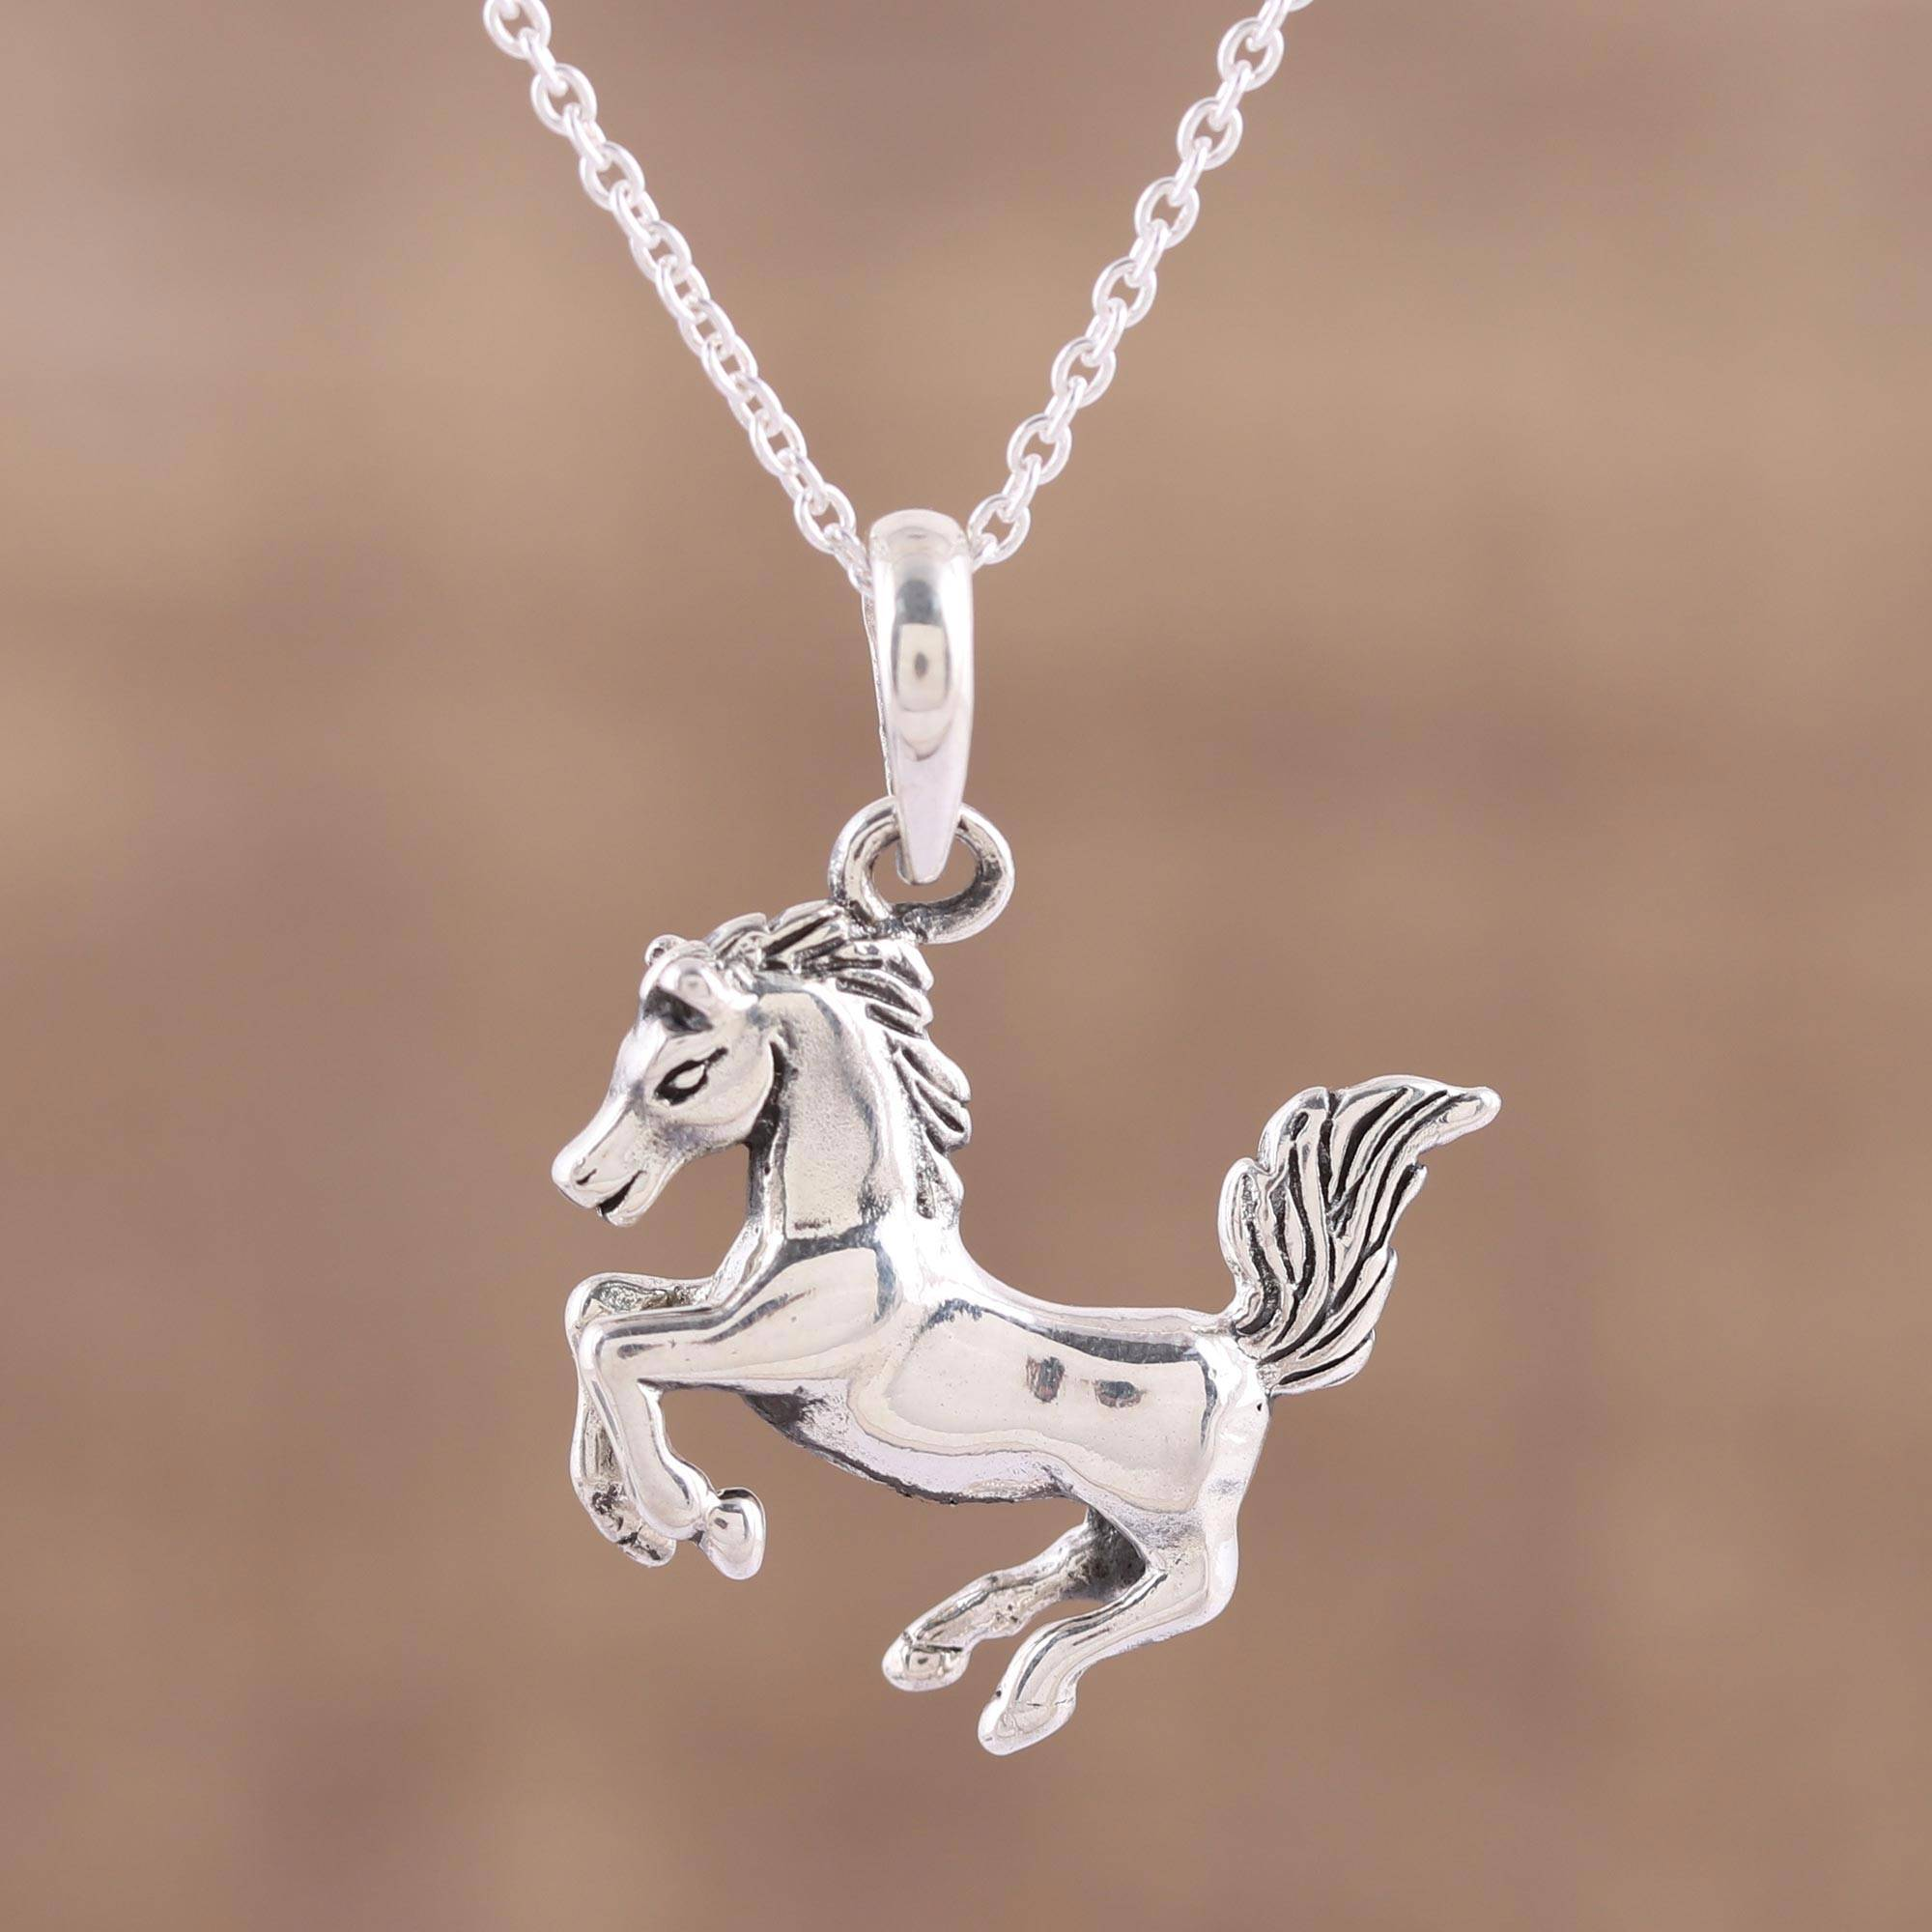 jewelry best friend namecoins collections necklaces hand by necklace products horse cut you coin lovers that equestrian fits exactly